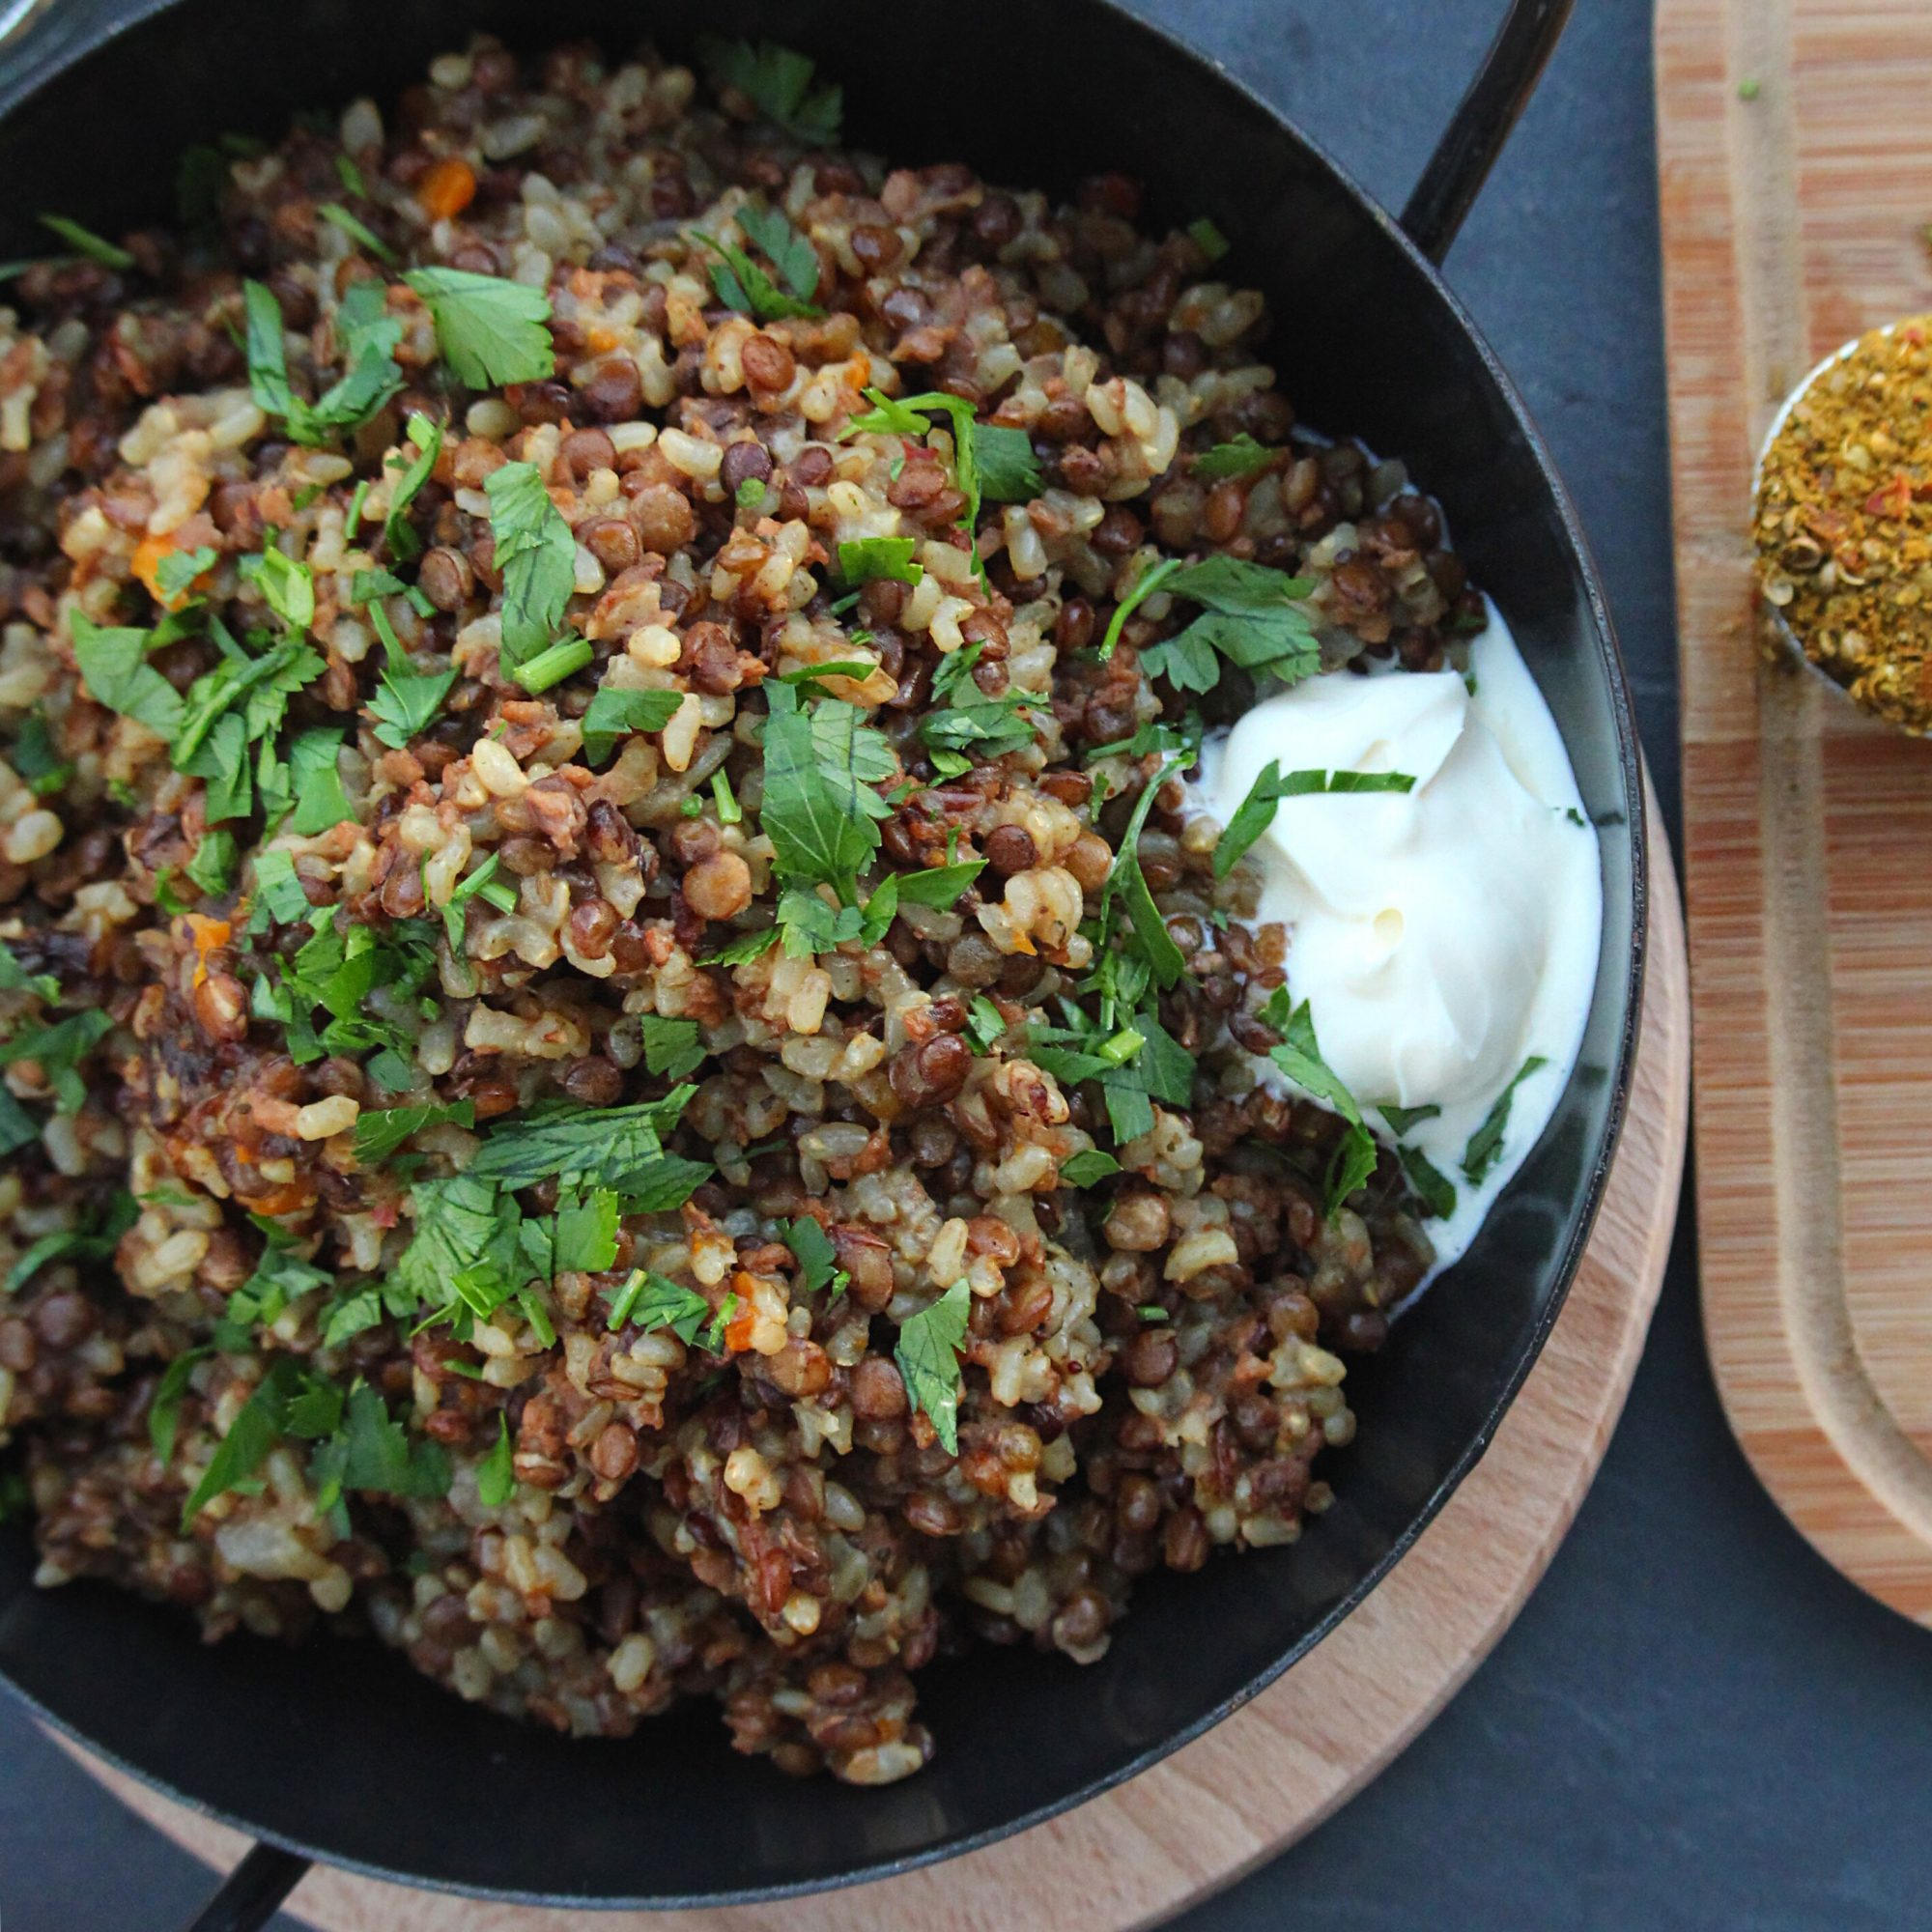 Lentils and Rice with TVP in a skillet